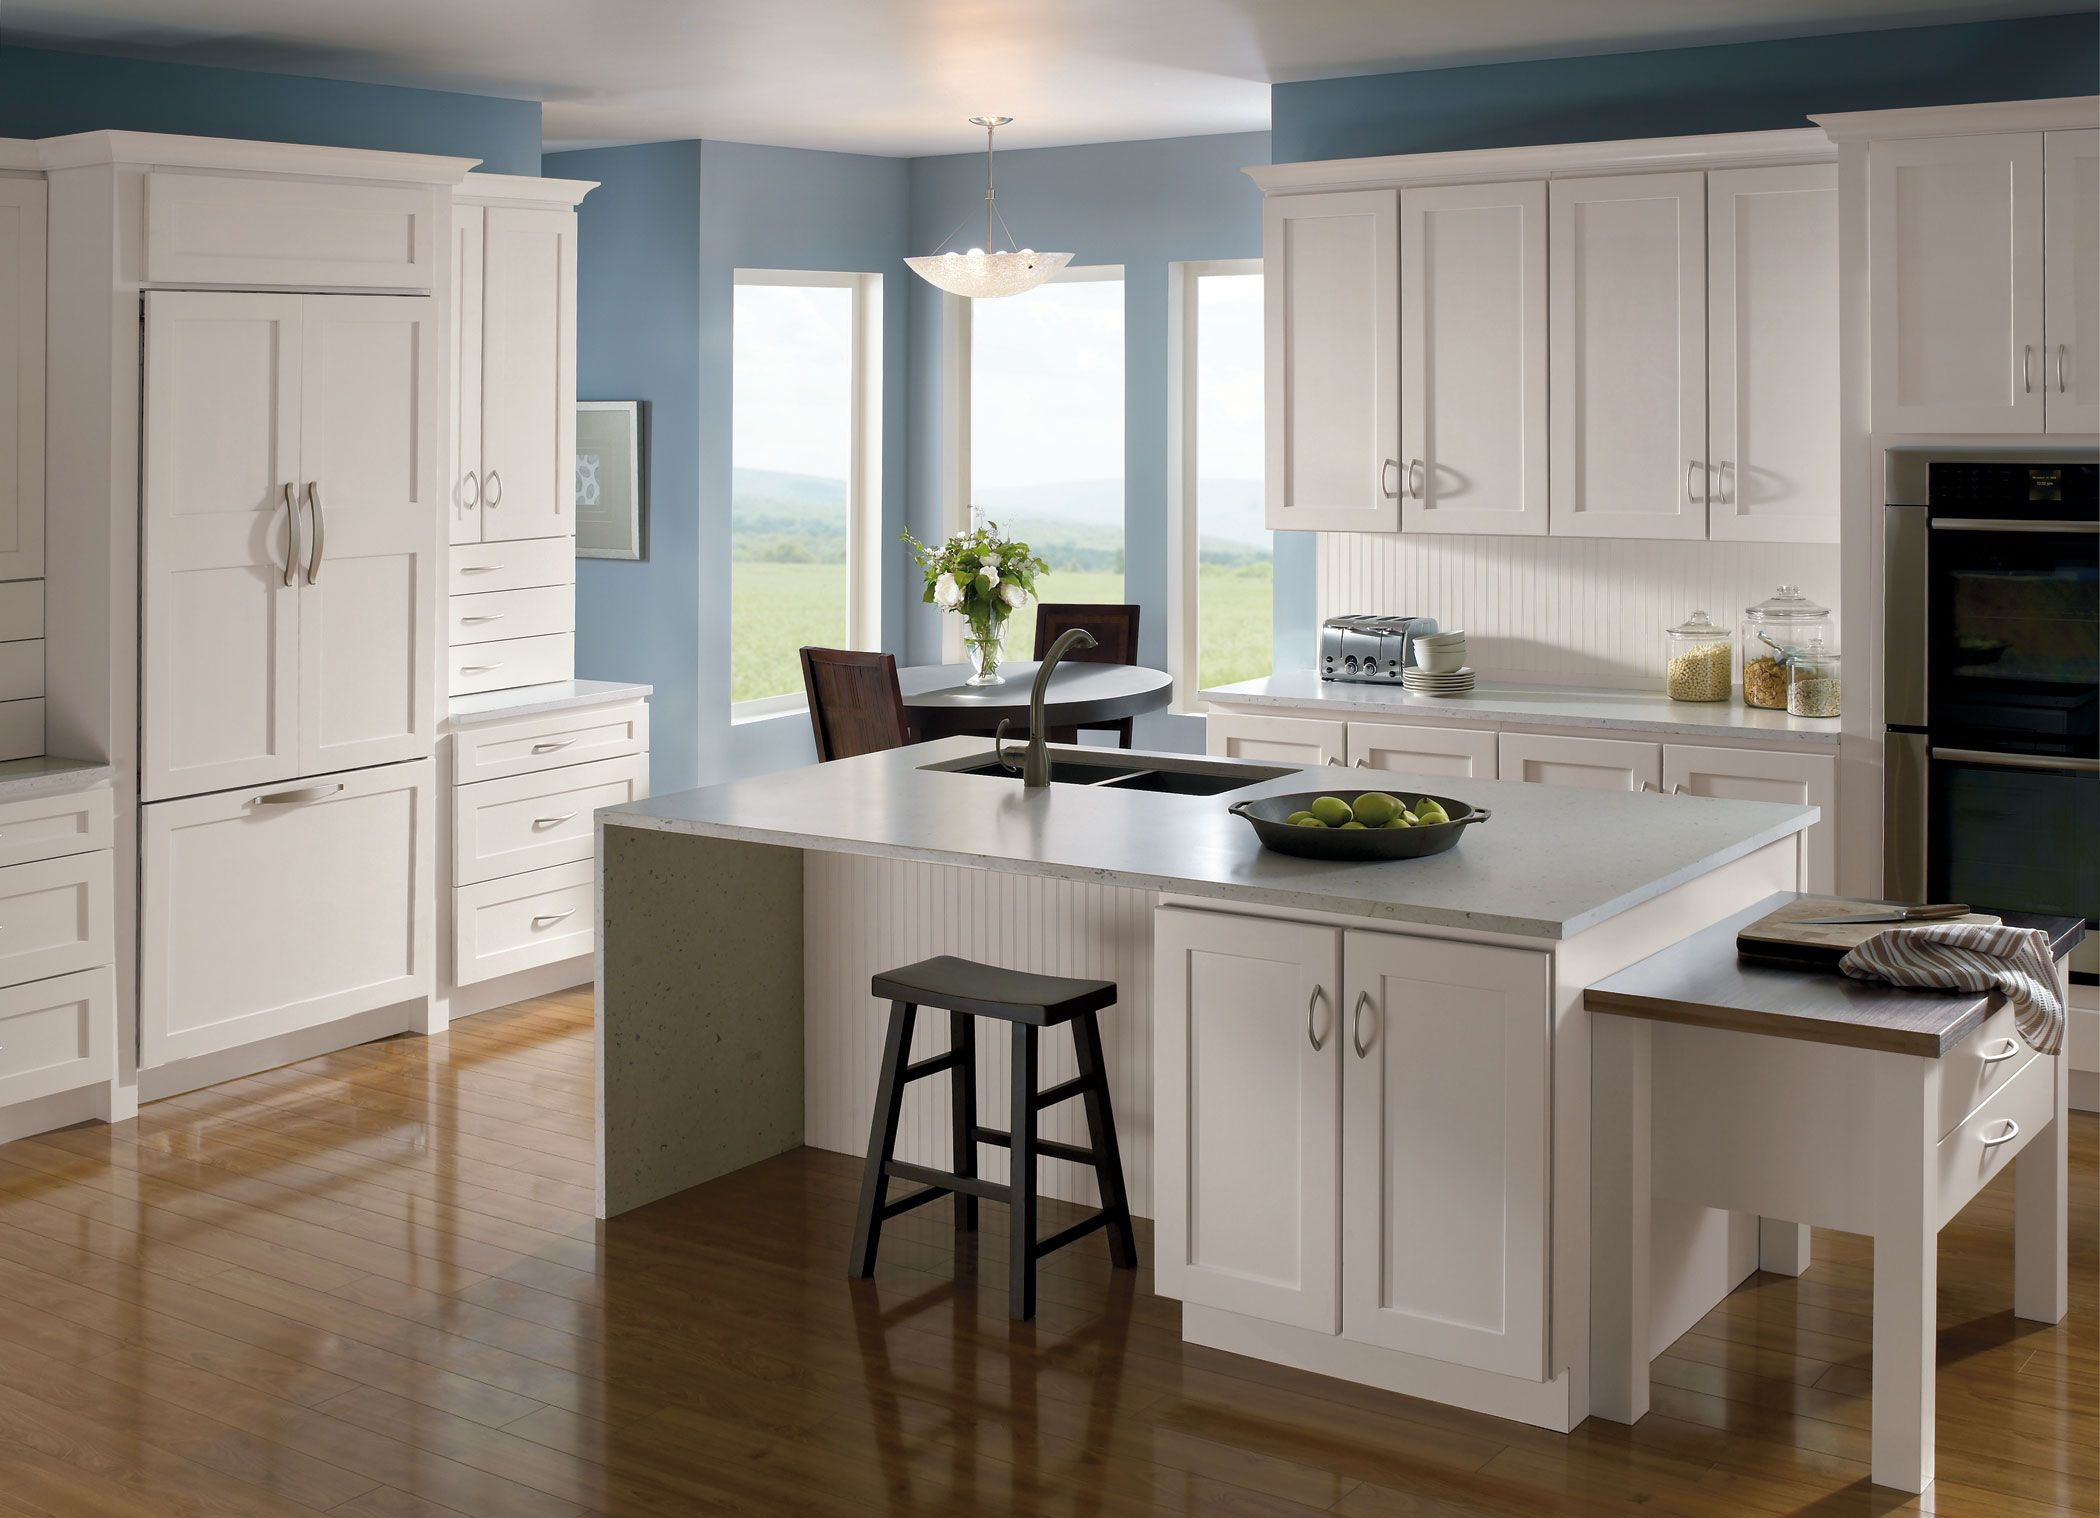 Homecrest Completes The Dover Maple Doors With An Alpine Finish For A Fresh Casual Look Kitchen Cabinets In Bathroom Home Decor Kitchen Kitchen Cabinetry